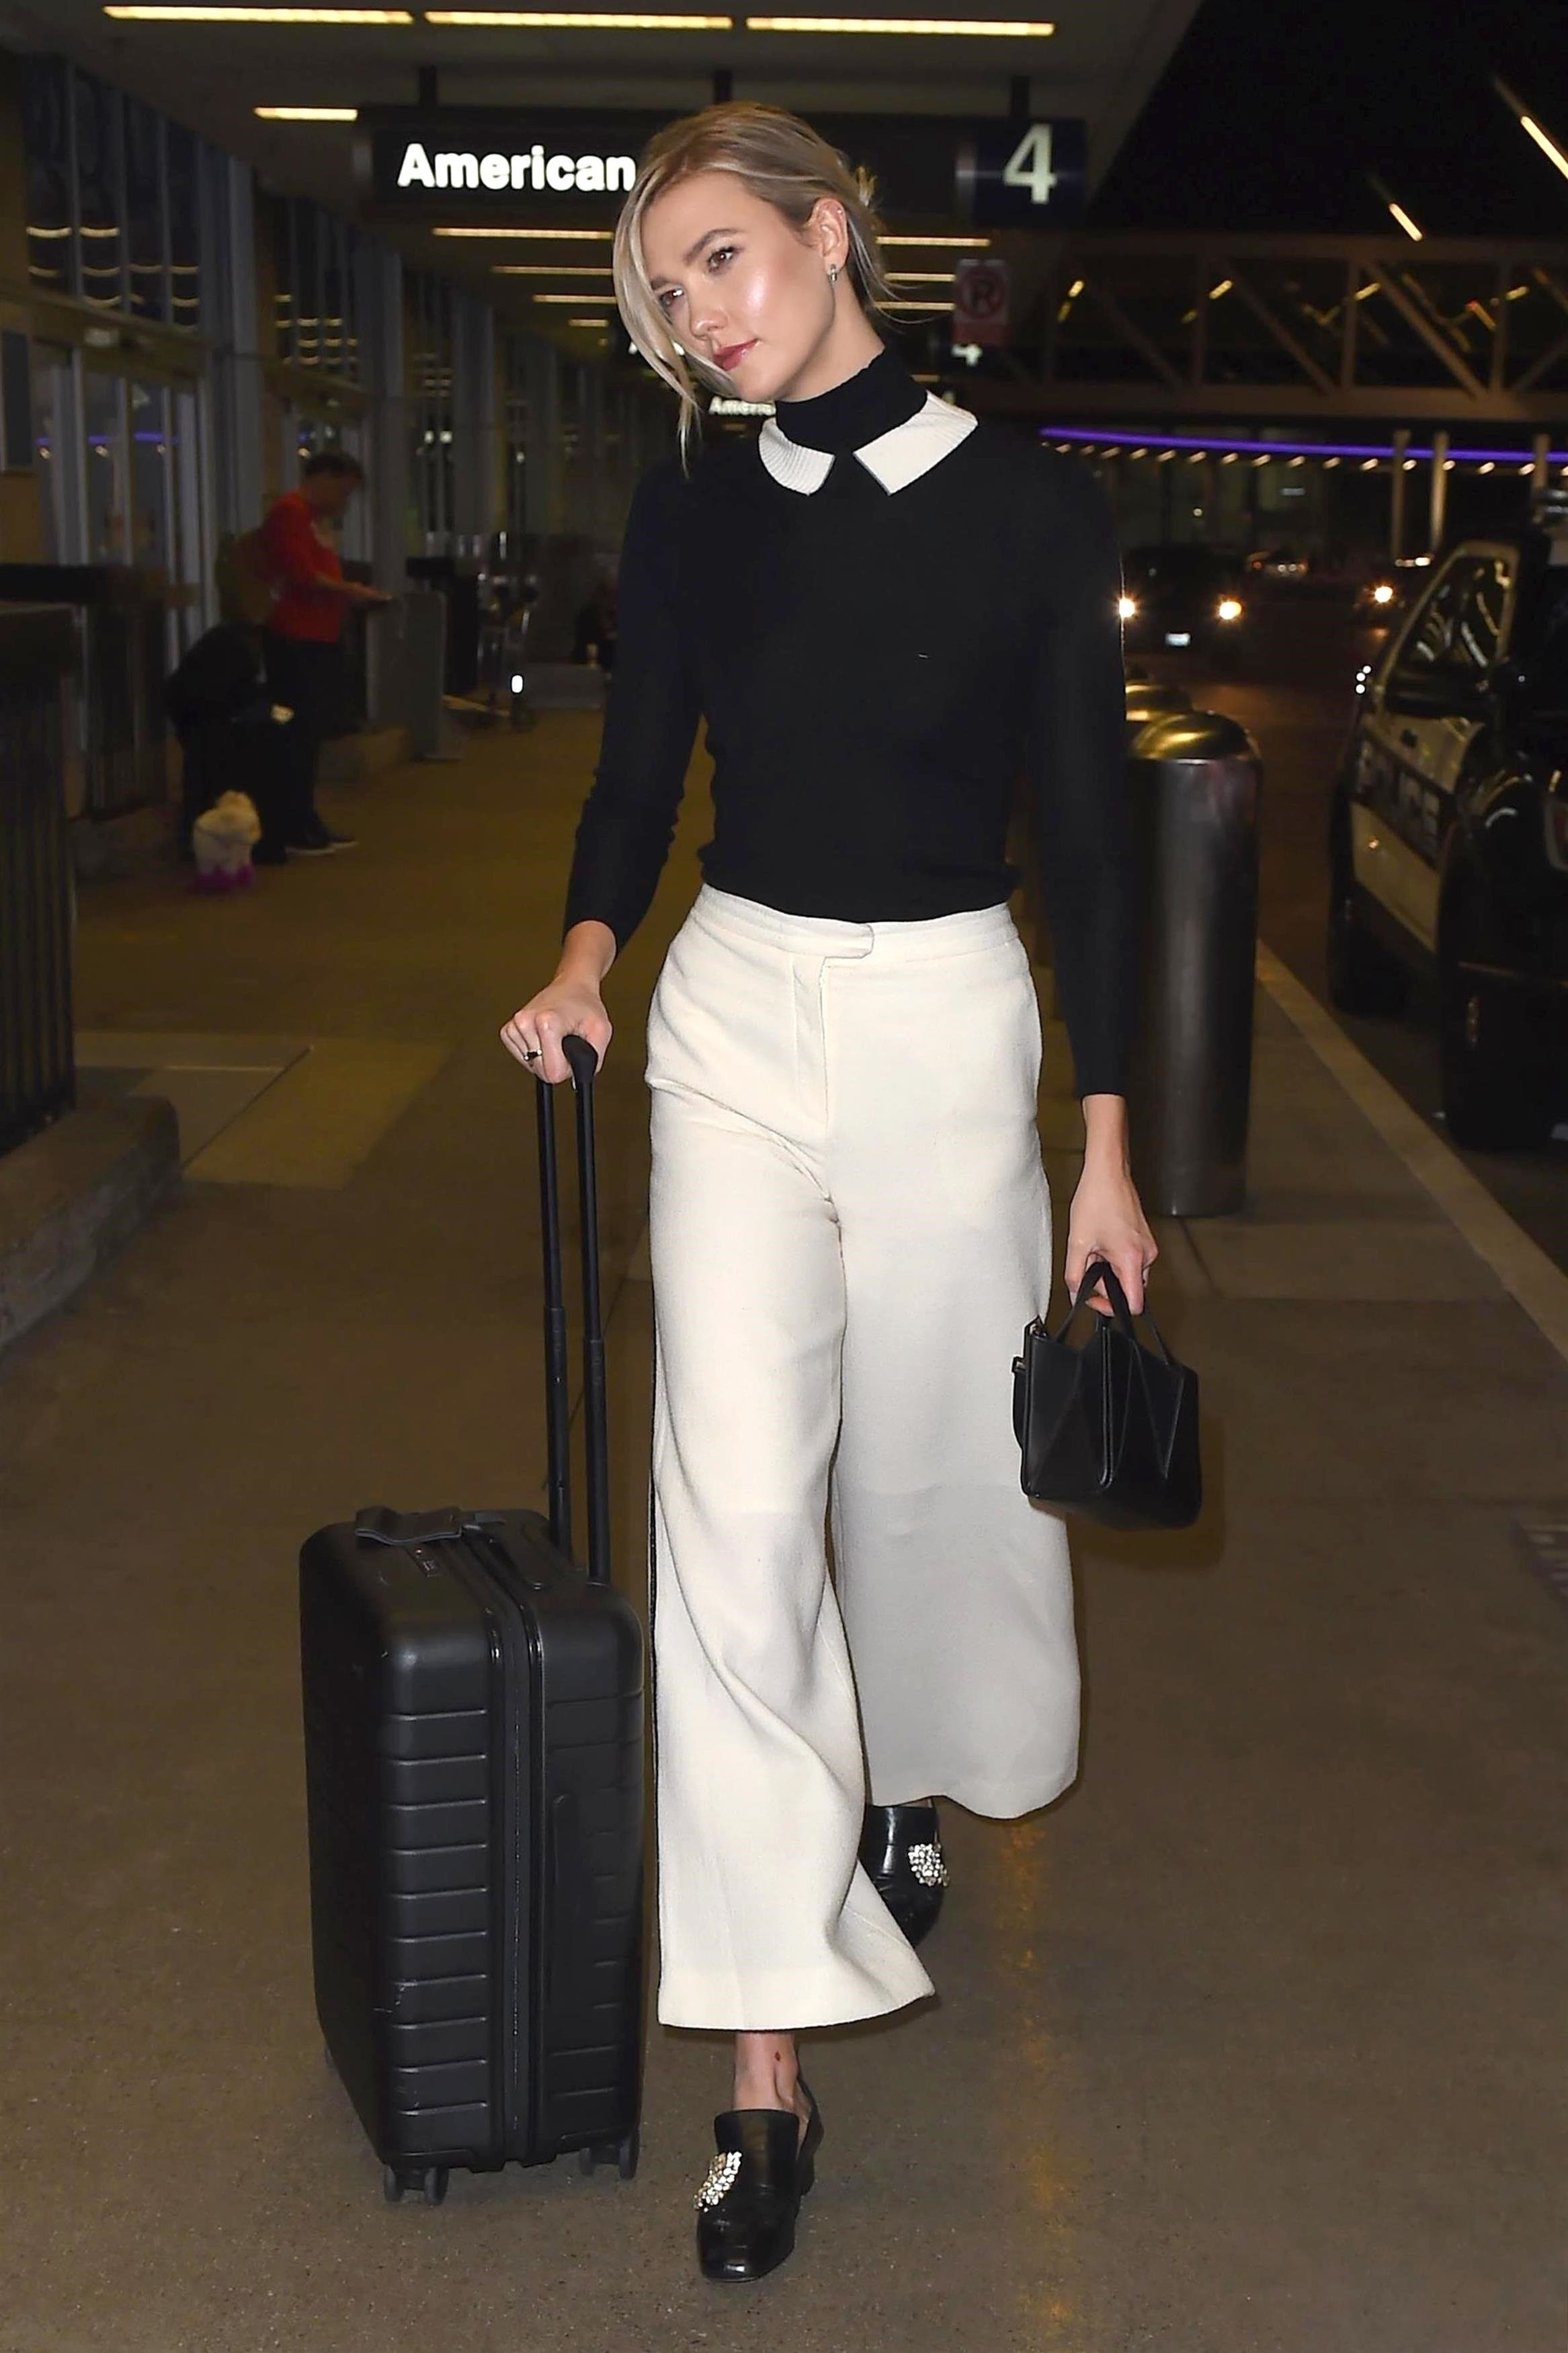 Los Angeles, CA  - *EXCLUSIVE*  - Supermodel Karlie Kloss was looking airport chic as she headed through LAX in Los Angeles, CA. Karlie was sin a good mood, sporting her signature smile as headed outside.  Pictured: Karlie Kloss    *UK Clients - Pictures Containing Children Please Pixelate Face Prior To Publication*, Image: 359922407, License: Rights-managed, Restrictions: , Model Release: no, Credit line: Profimedia, AKM-GSI